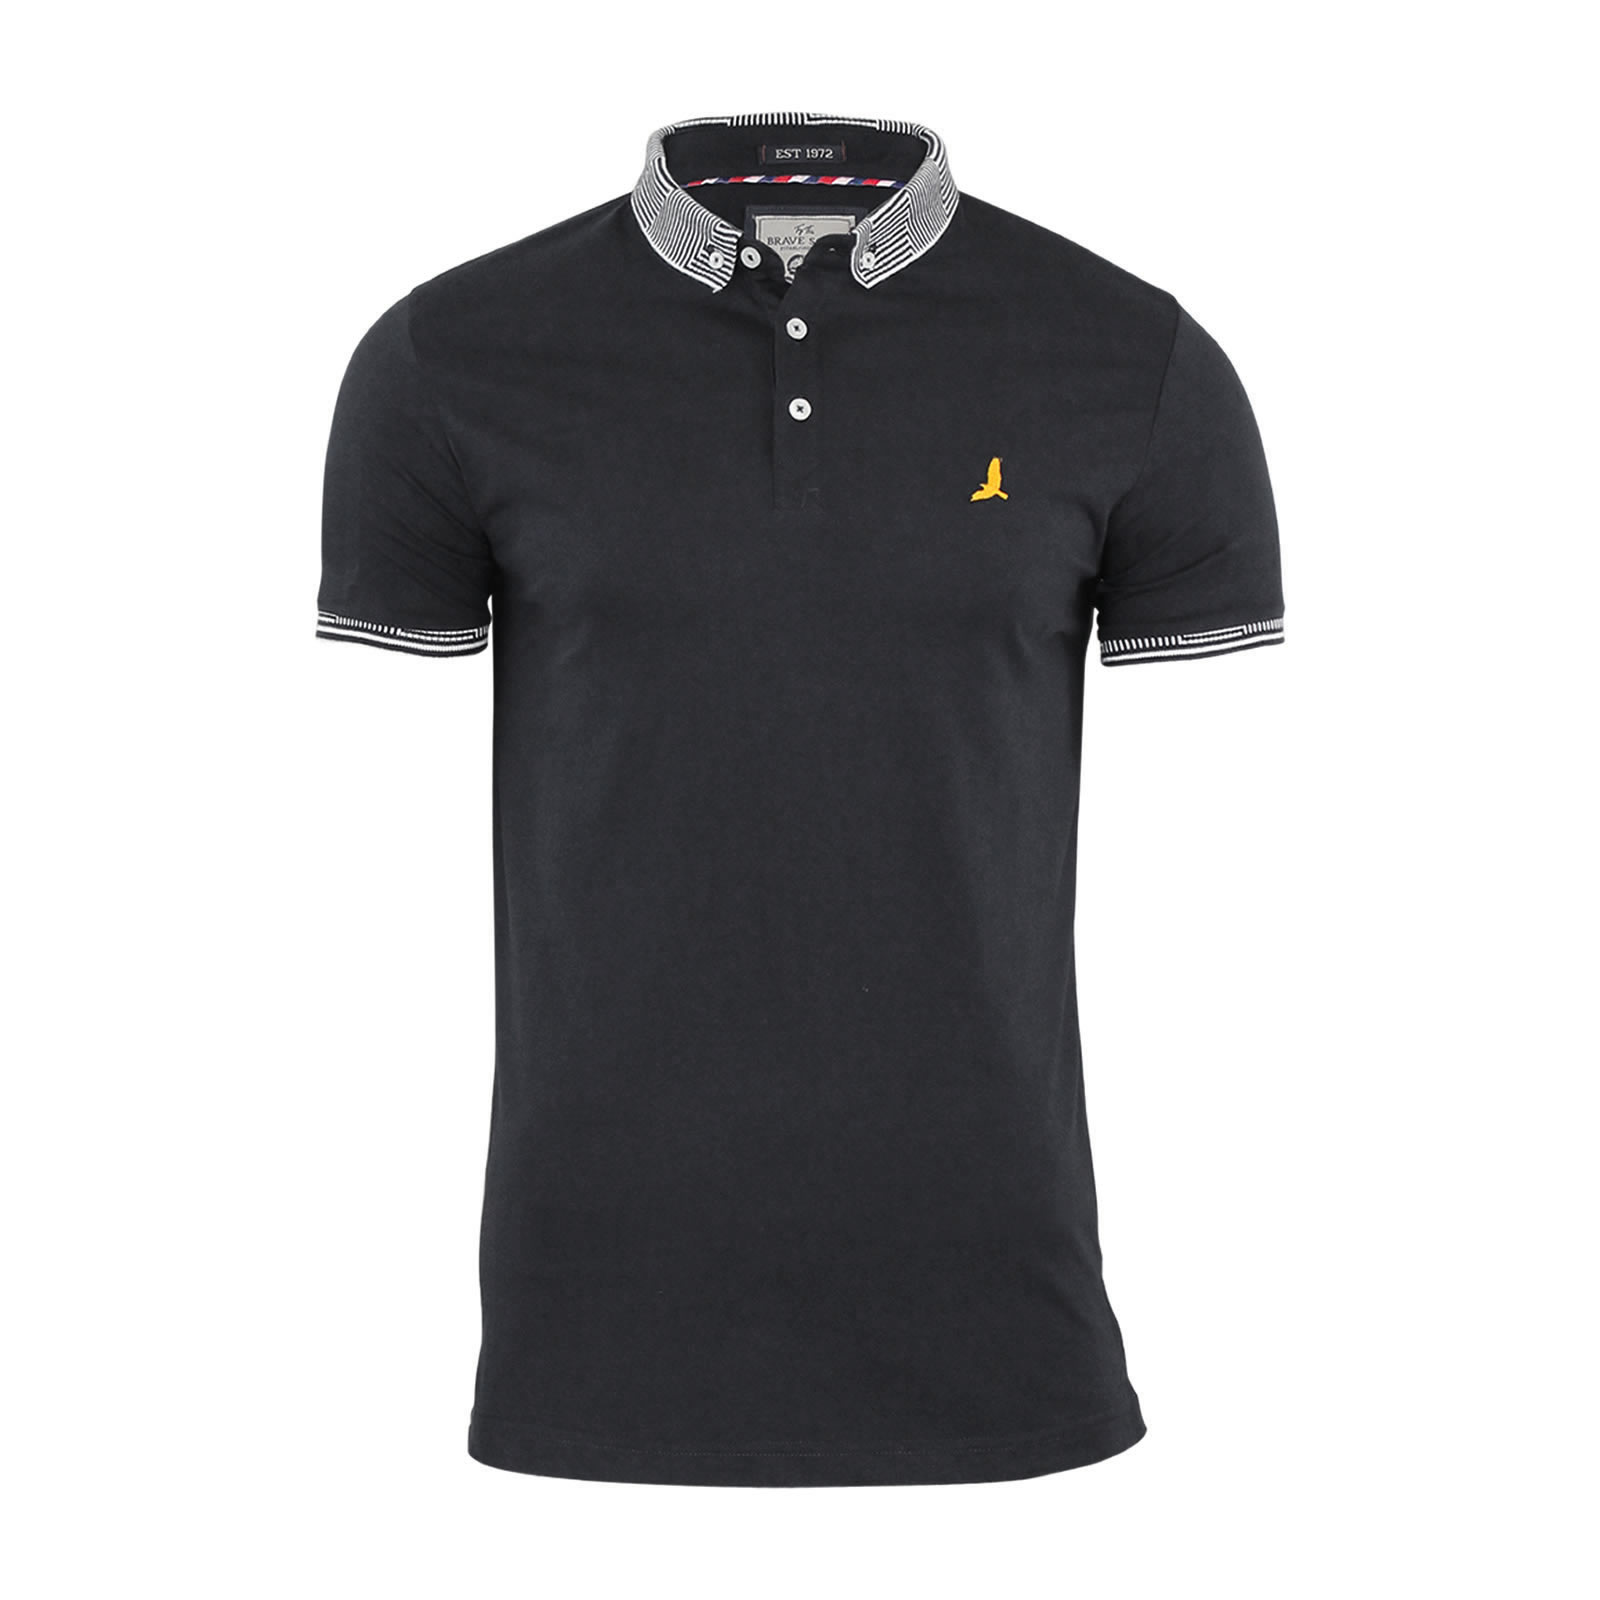 Mens-Polo-T-Shirt-Brave-Soul-Glover-Cotton-Collared-Short-Sleeve-Casual-Top thumbnail 12